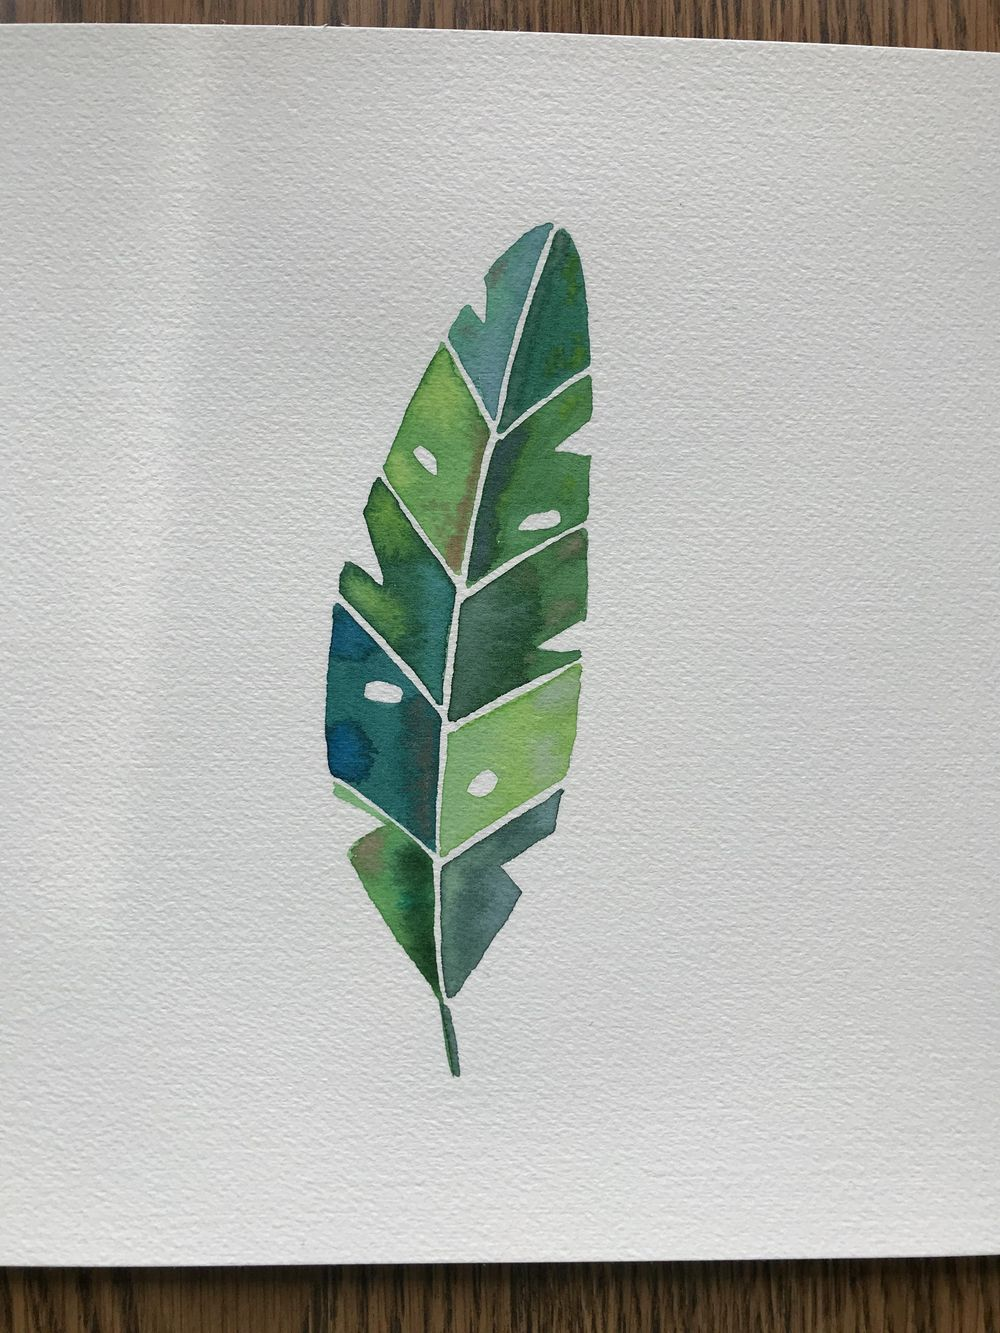 Modern Botanical Watercolor Paintings - image 2 - student project